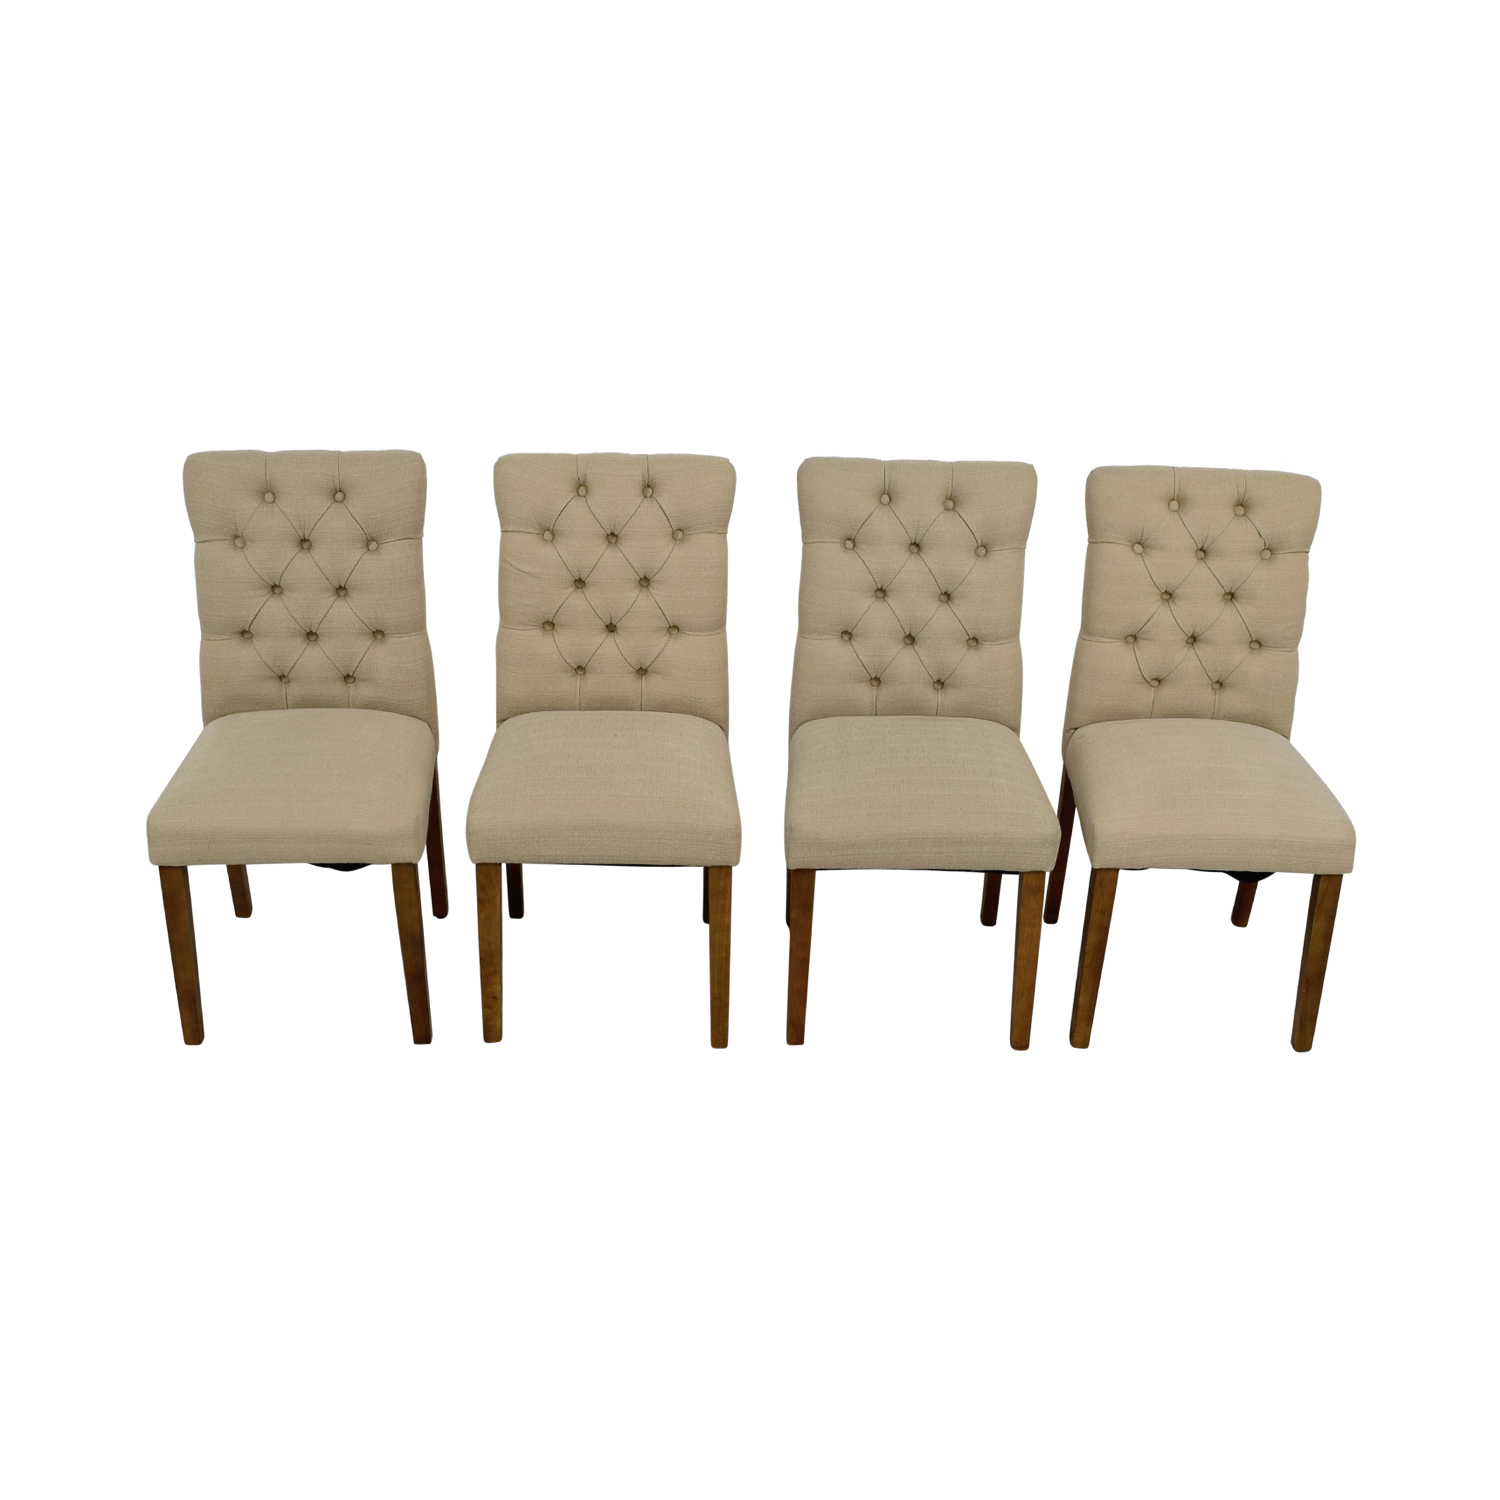 67 off target target brookline threshold tan tufted for Tufted dining chairs for sale